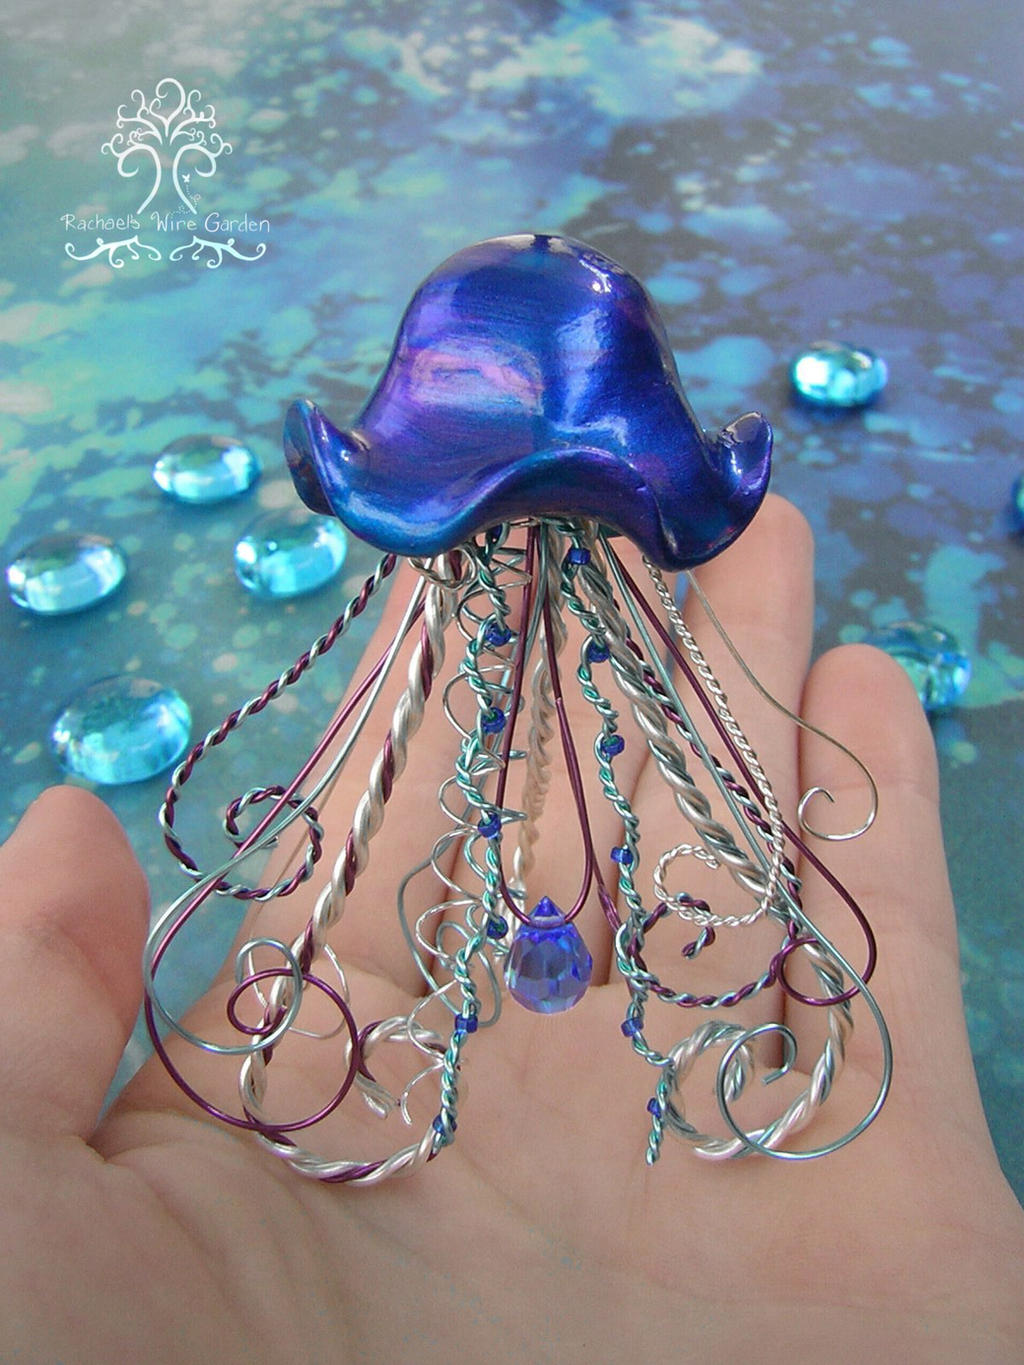 Pet Jellyfish by RachaelsWireGarden